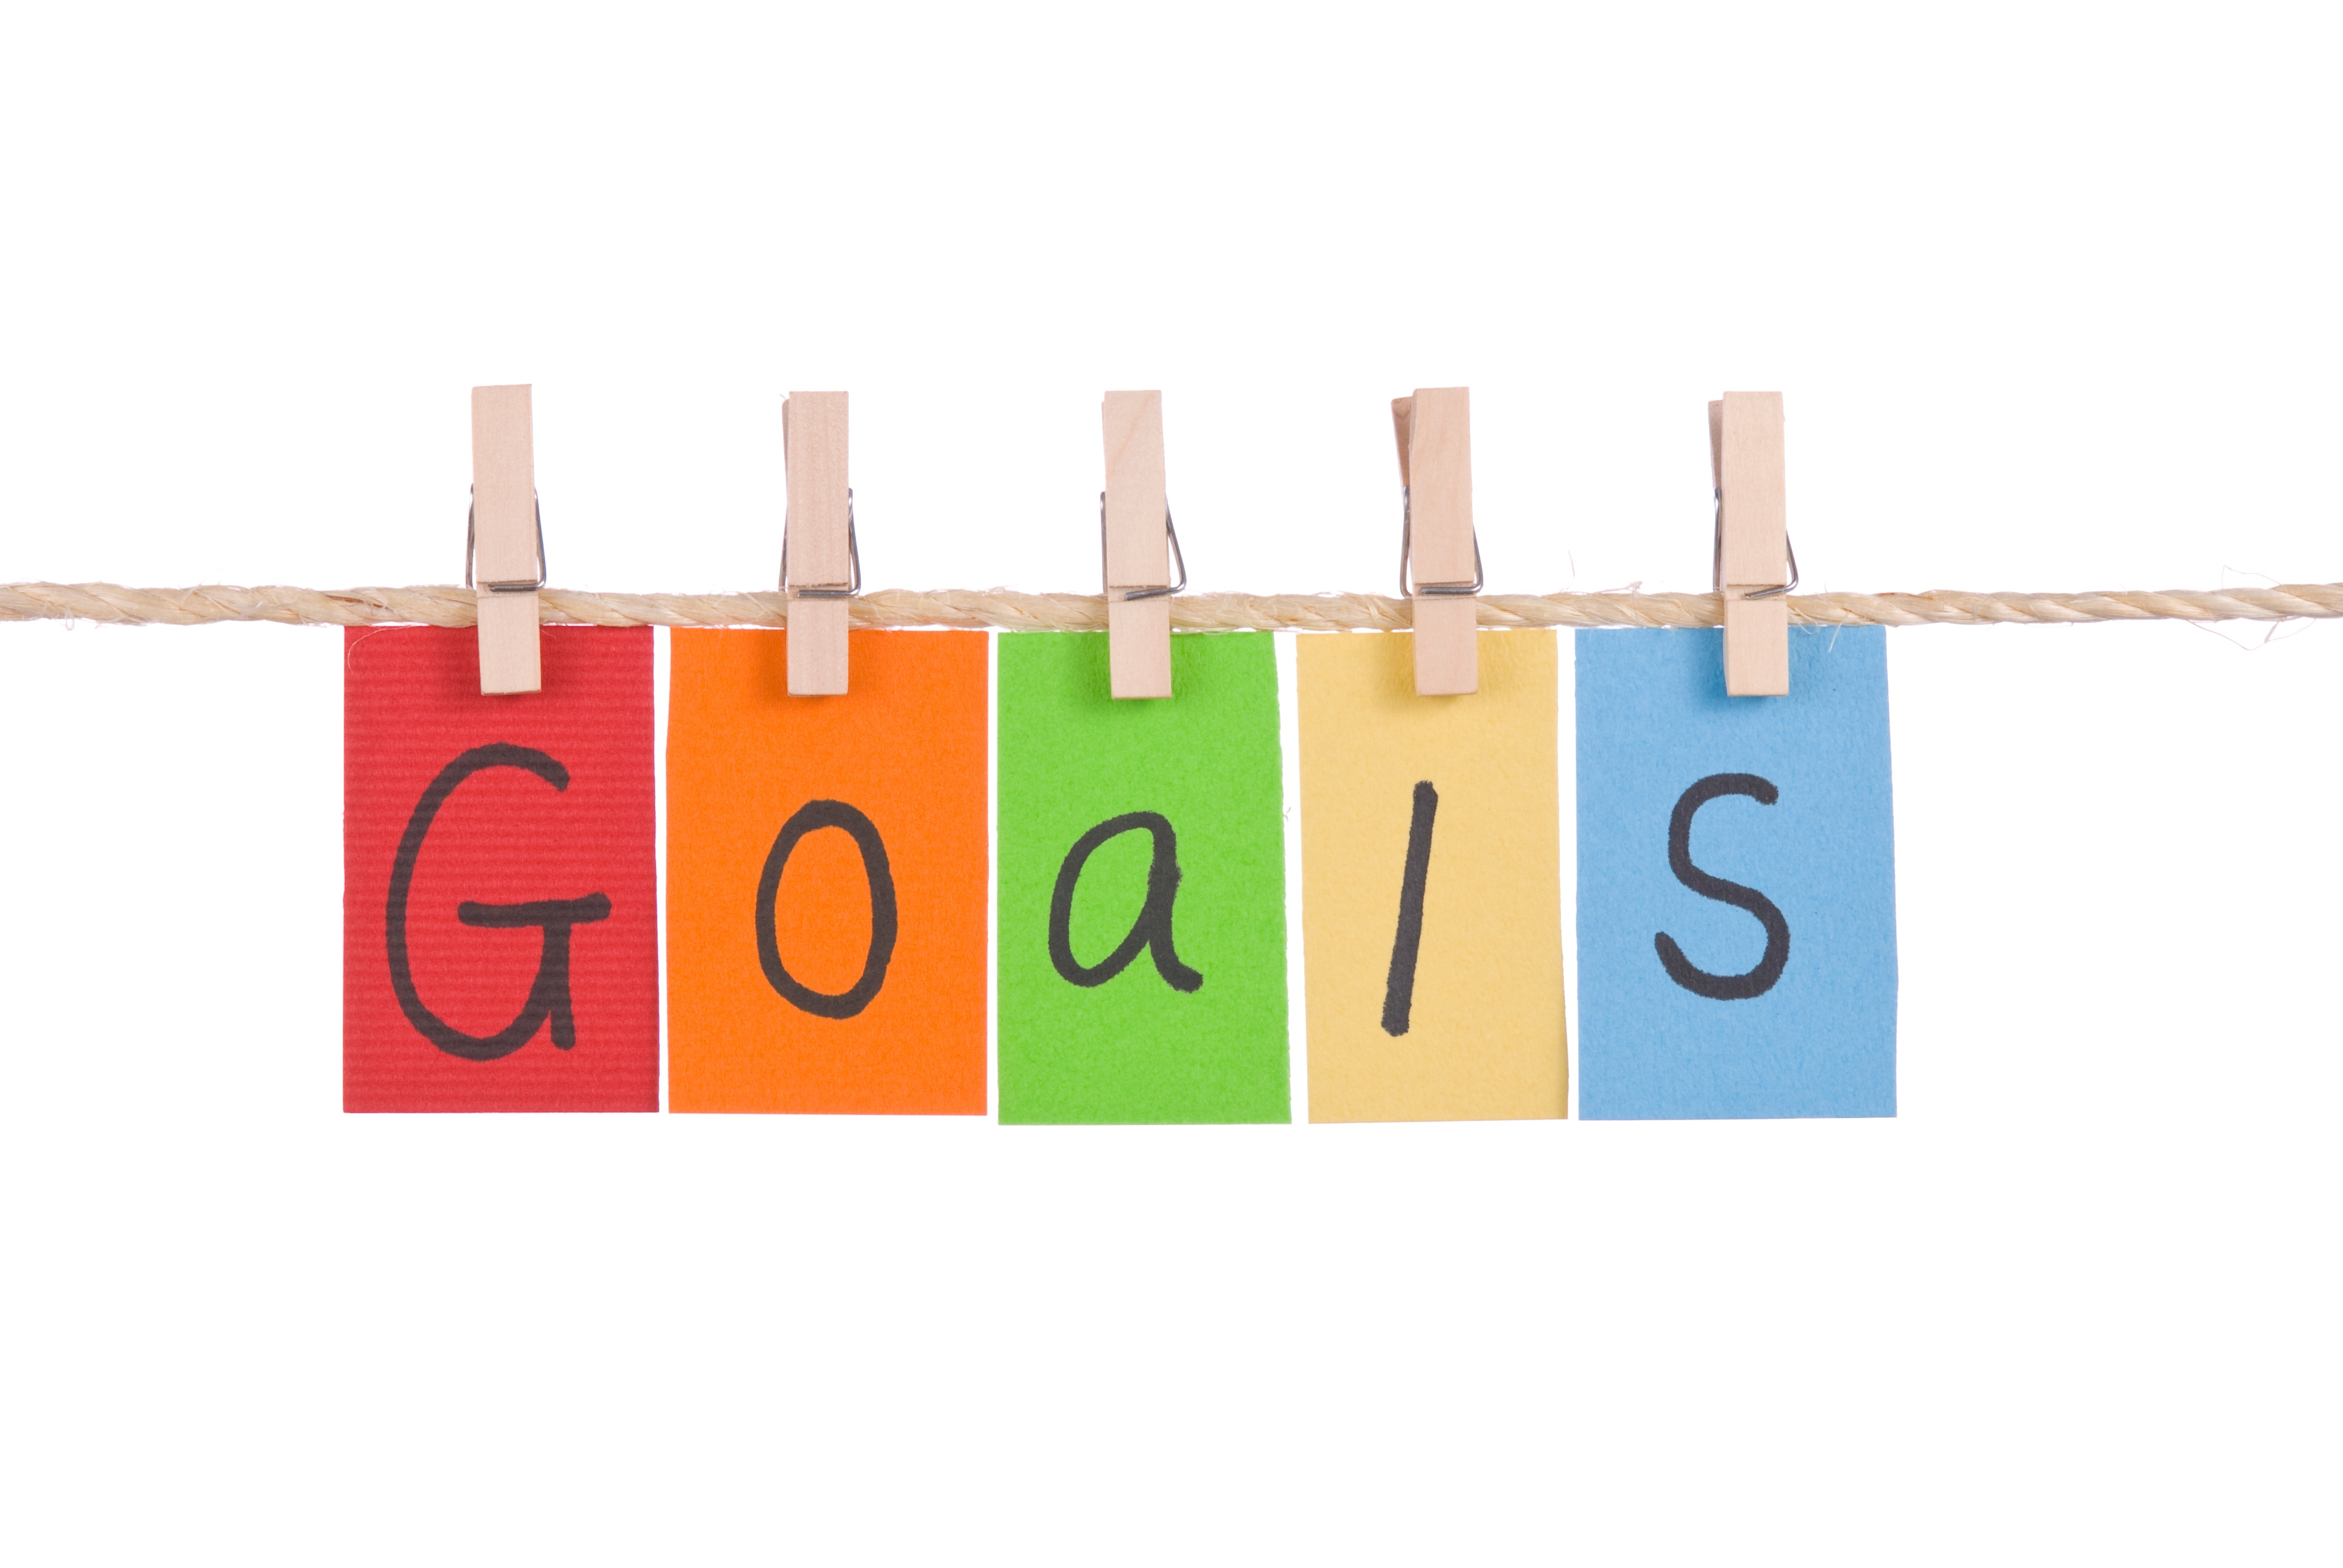 Free Meeting Goals Cliparts, Download Free Clip Art, Free.